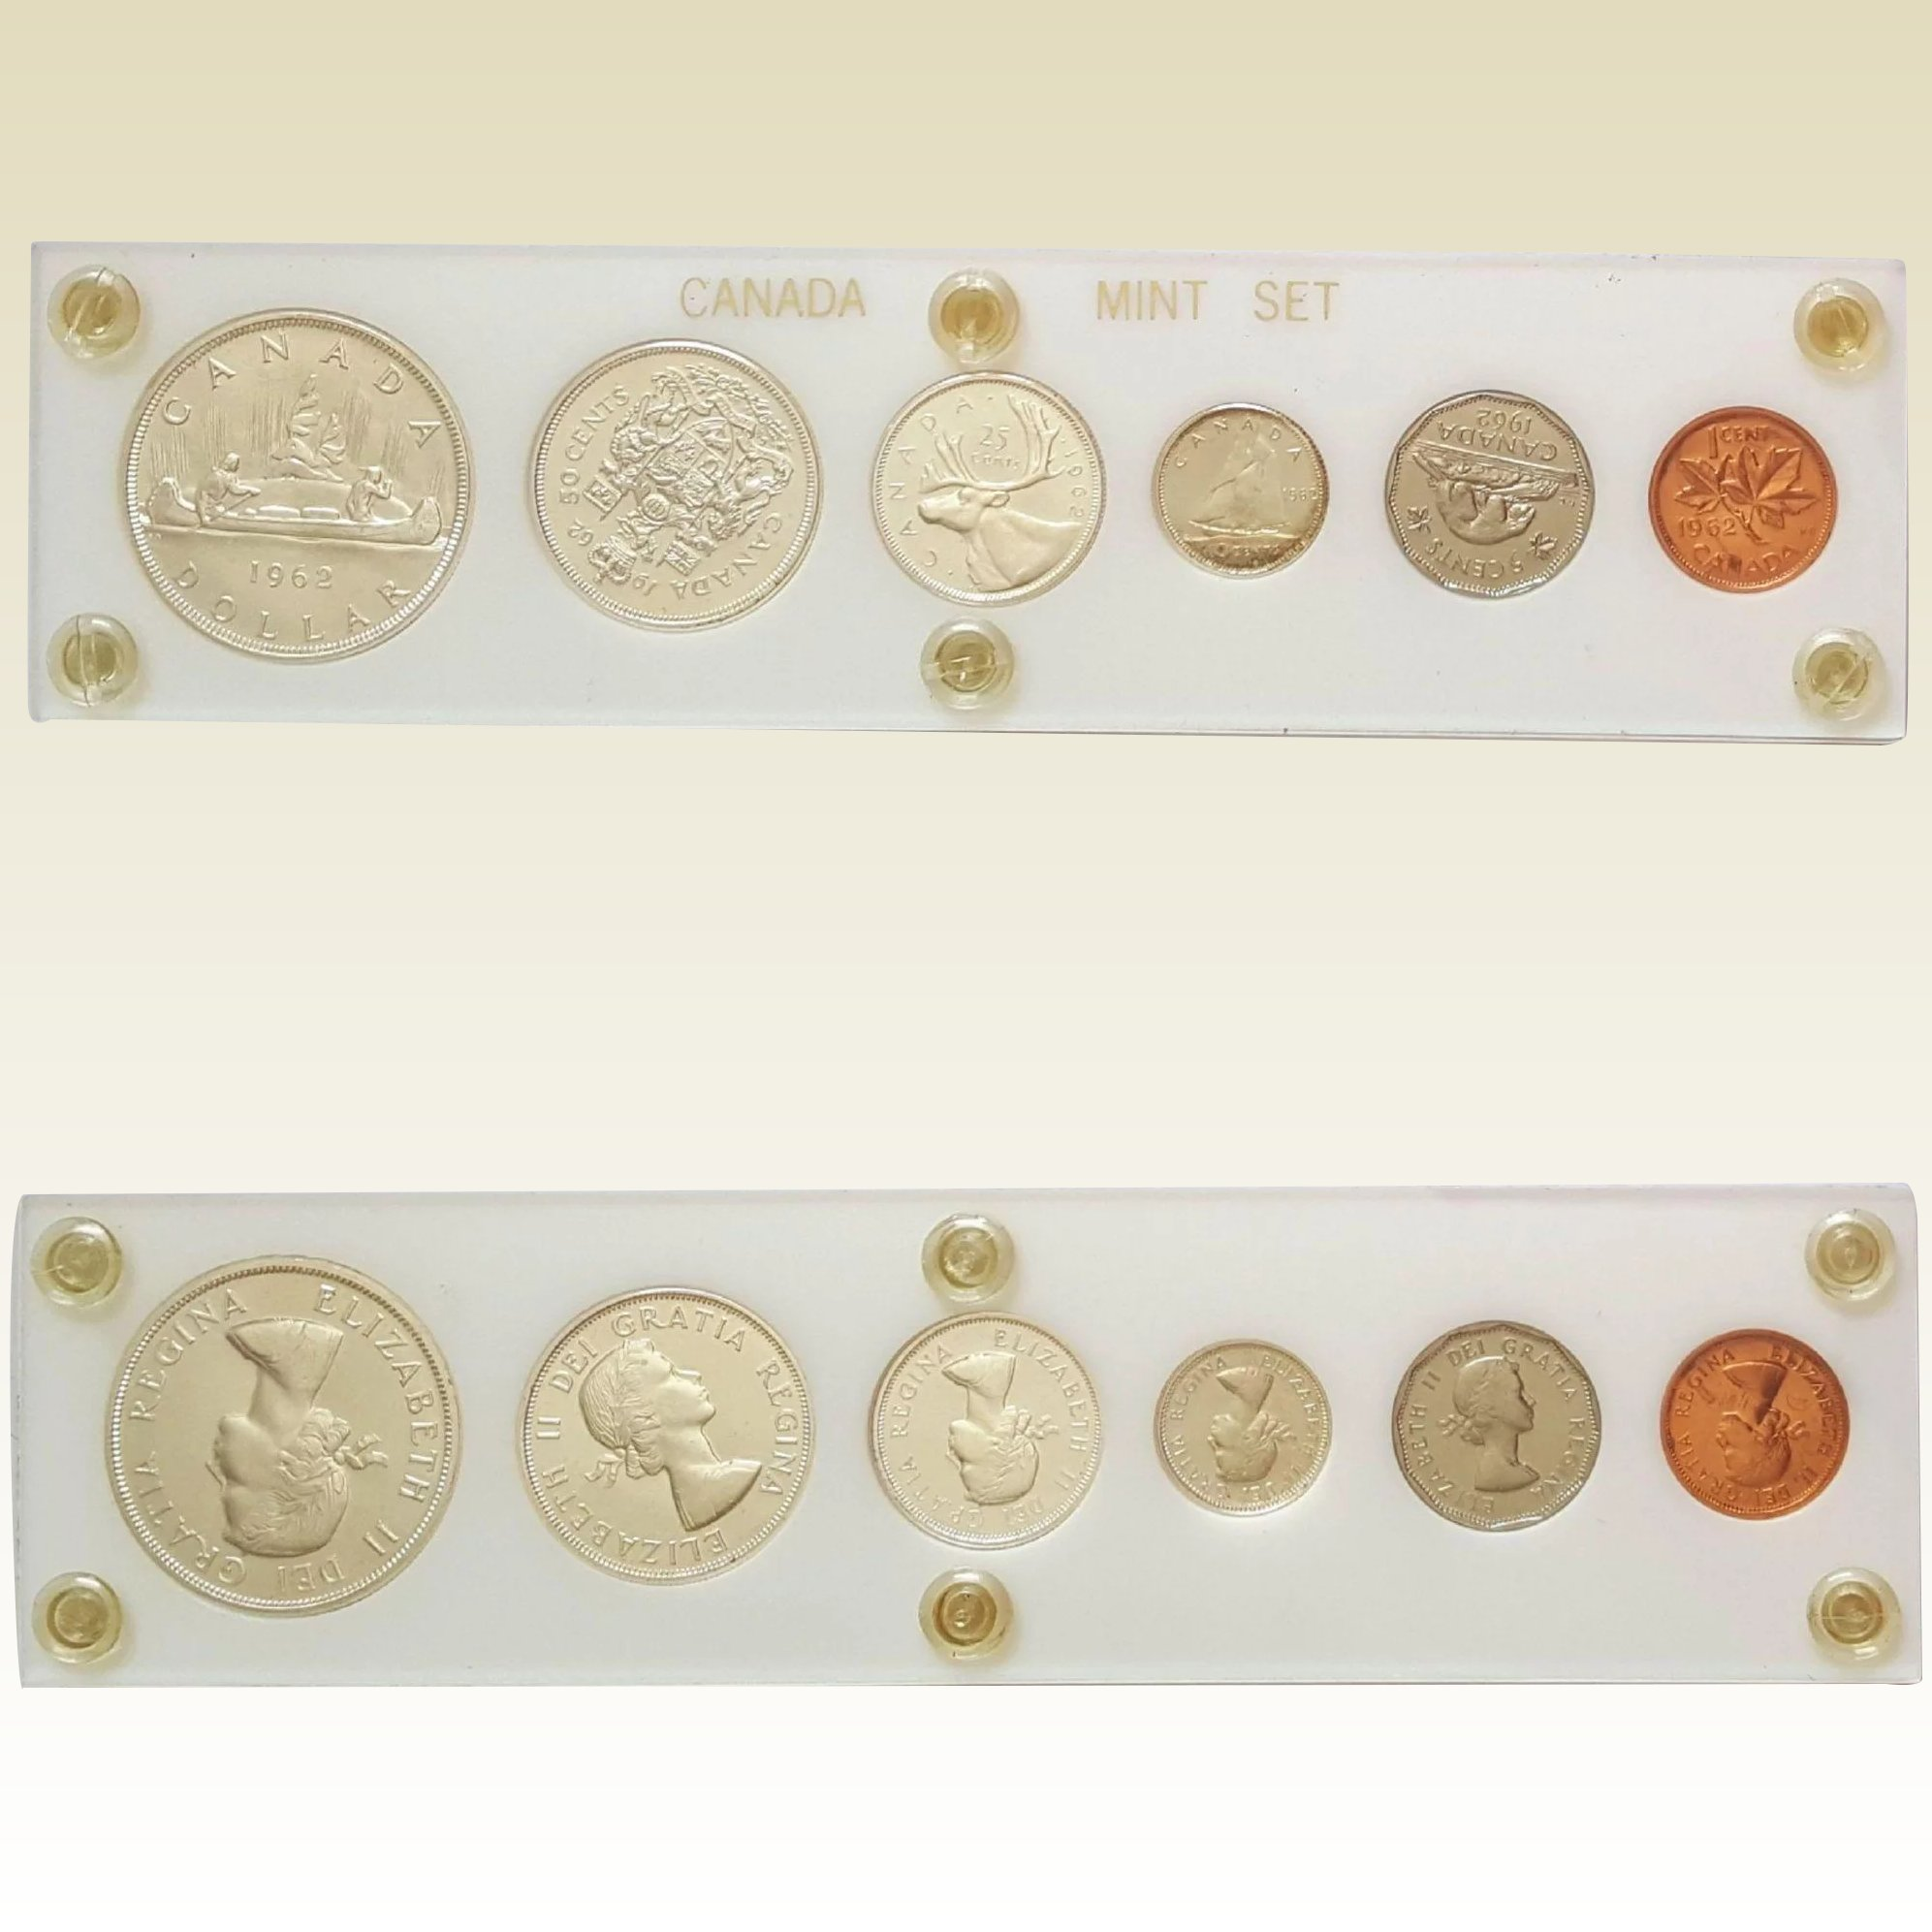 Mint Set 1962 Canadian Mint Set Encapsulated Coin Currency